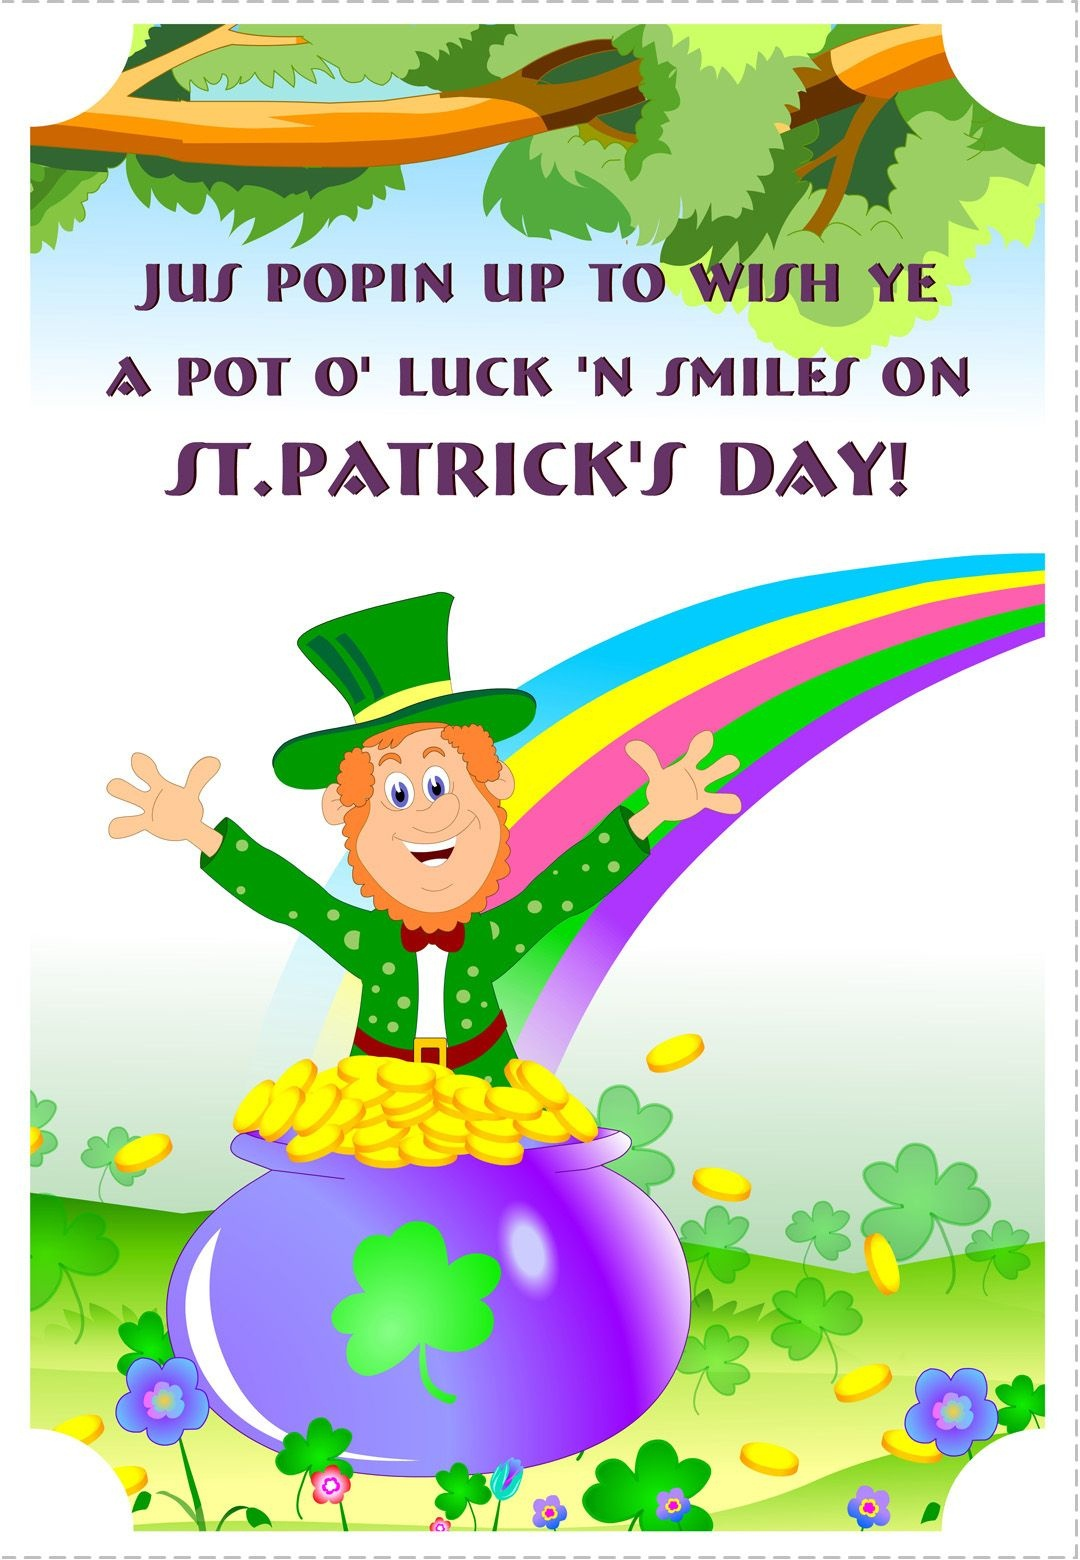 Free Printable A Pot Of Luck St Patrick's Greeting Card | Printable - Free Printable St Patrick's Day Card